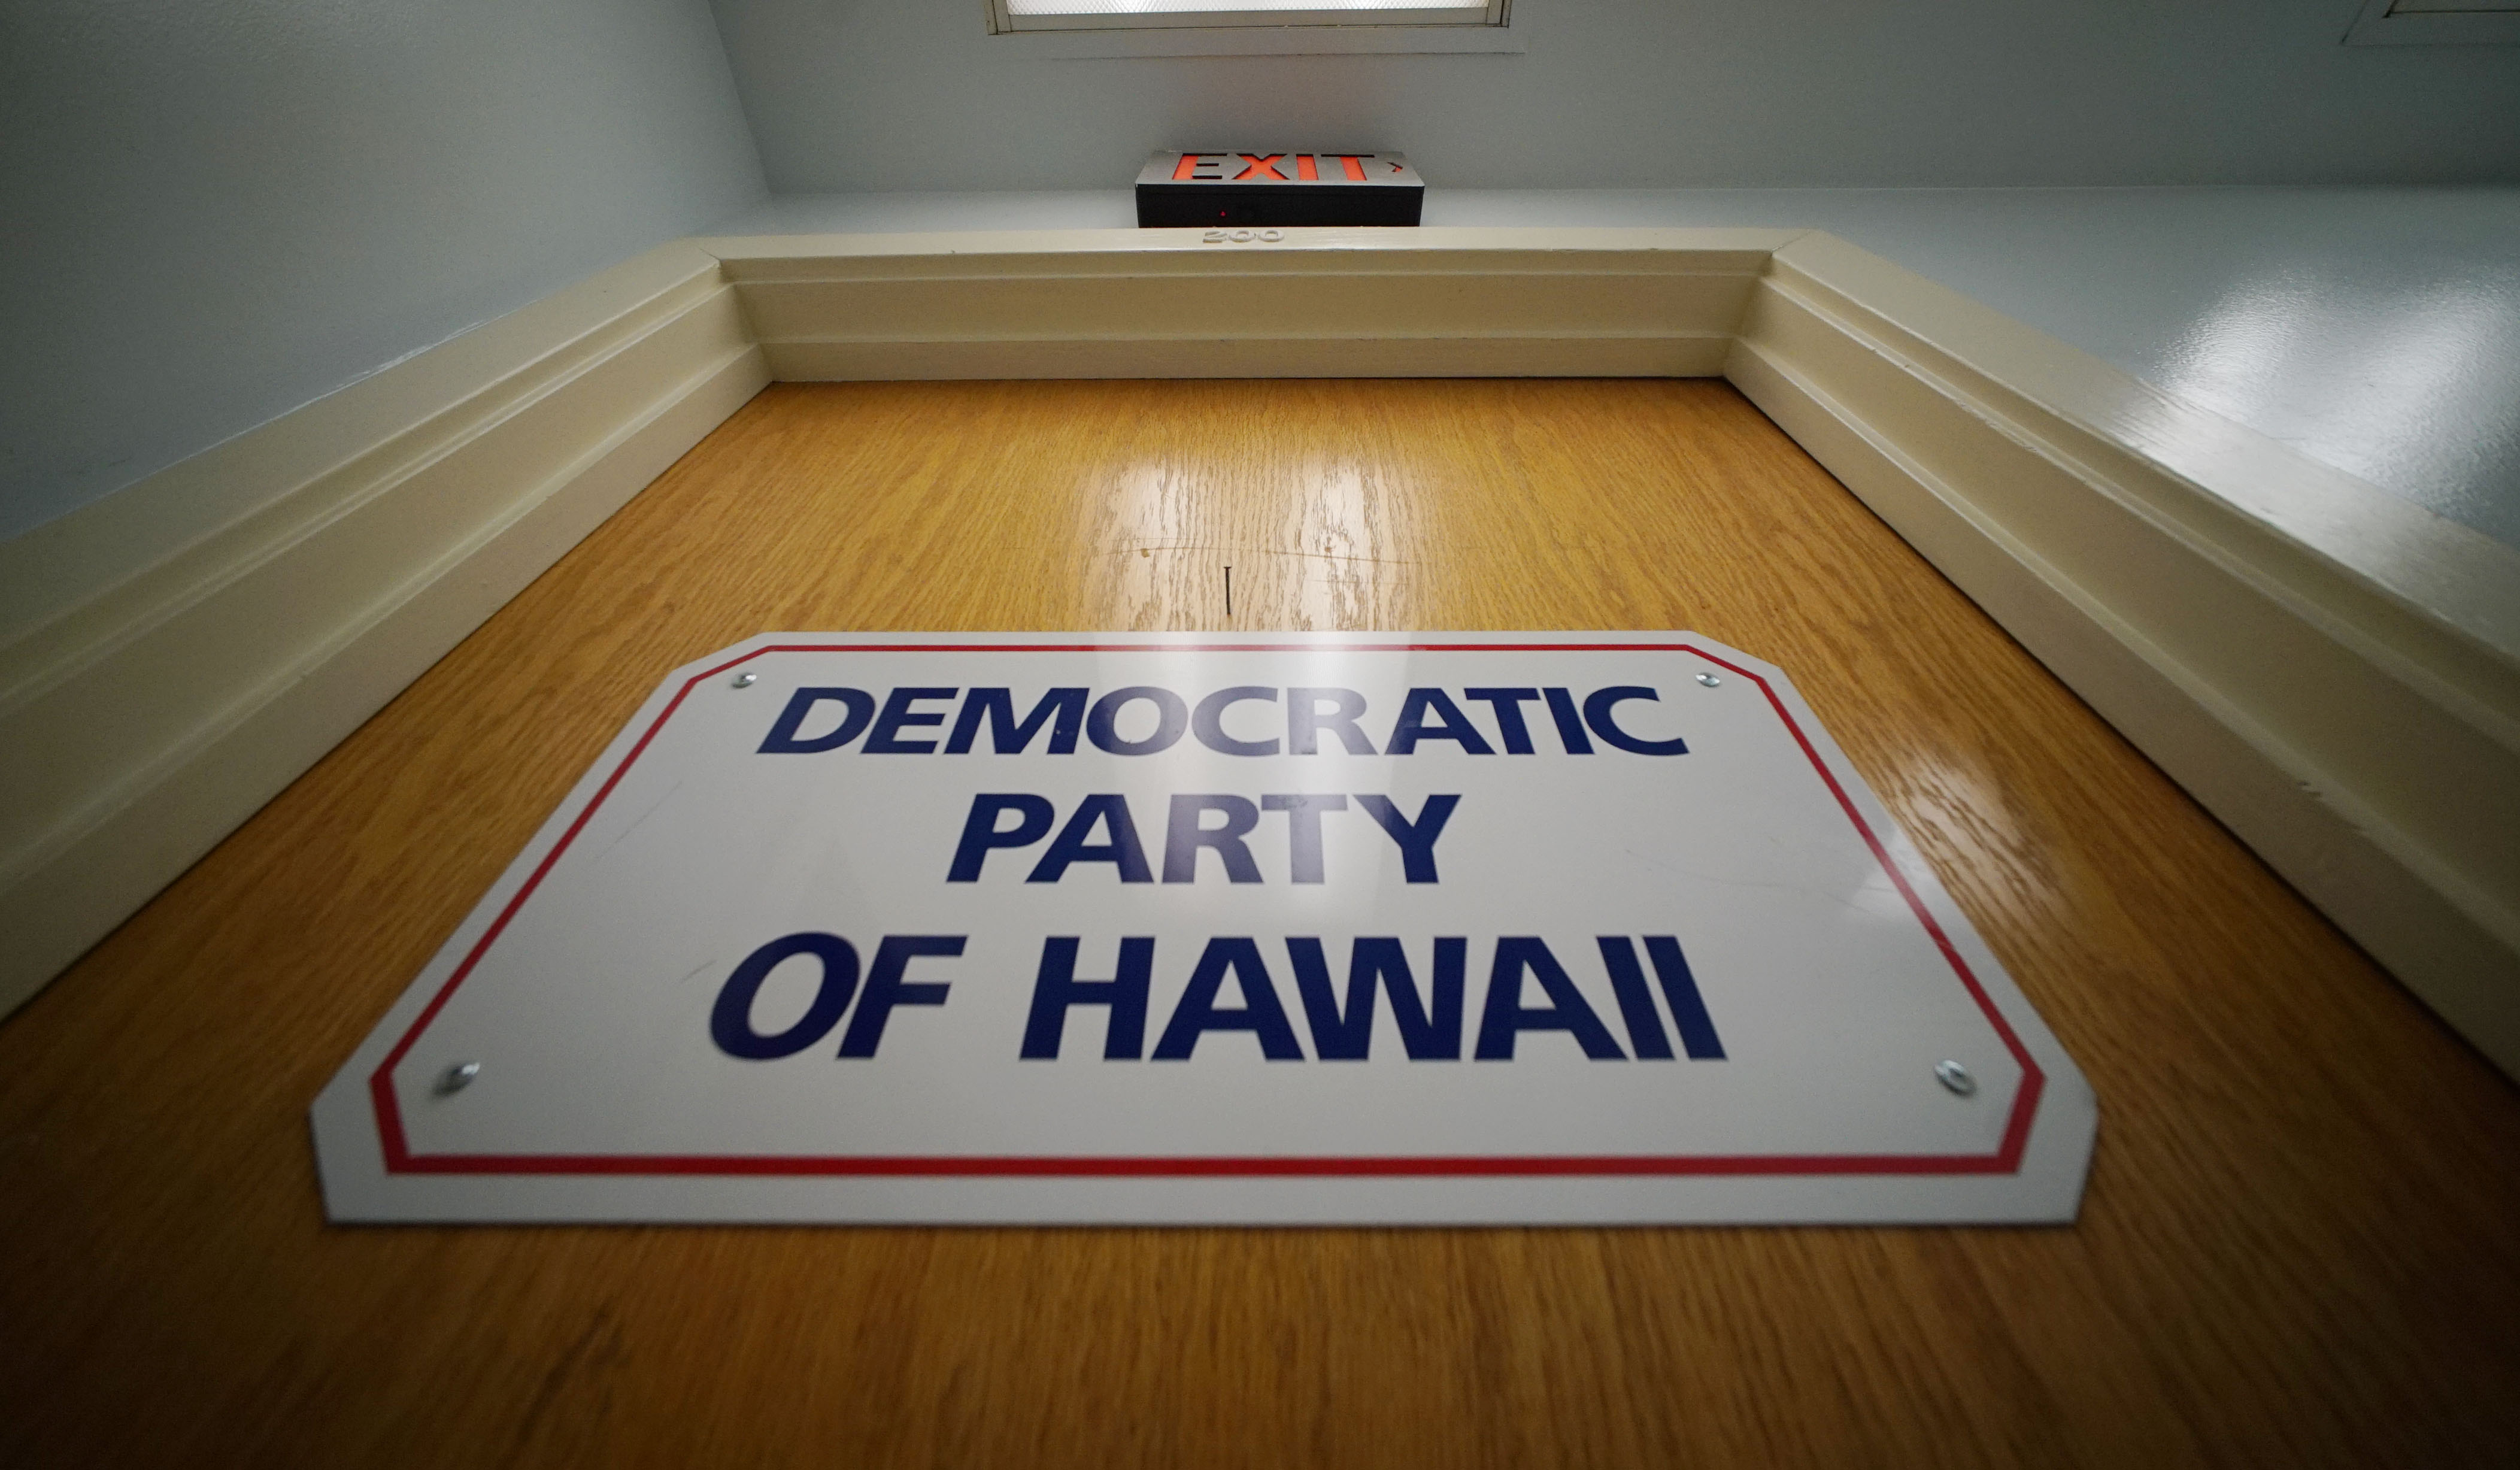 Democratic Party of Hawaii office Ward Avenue.